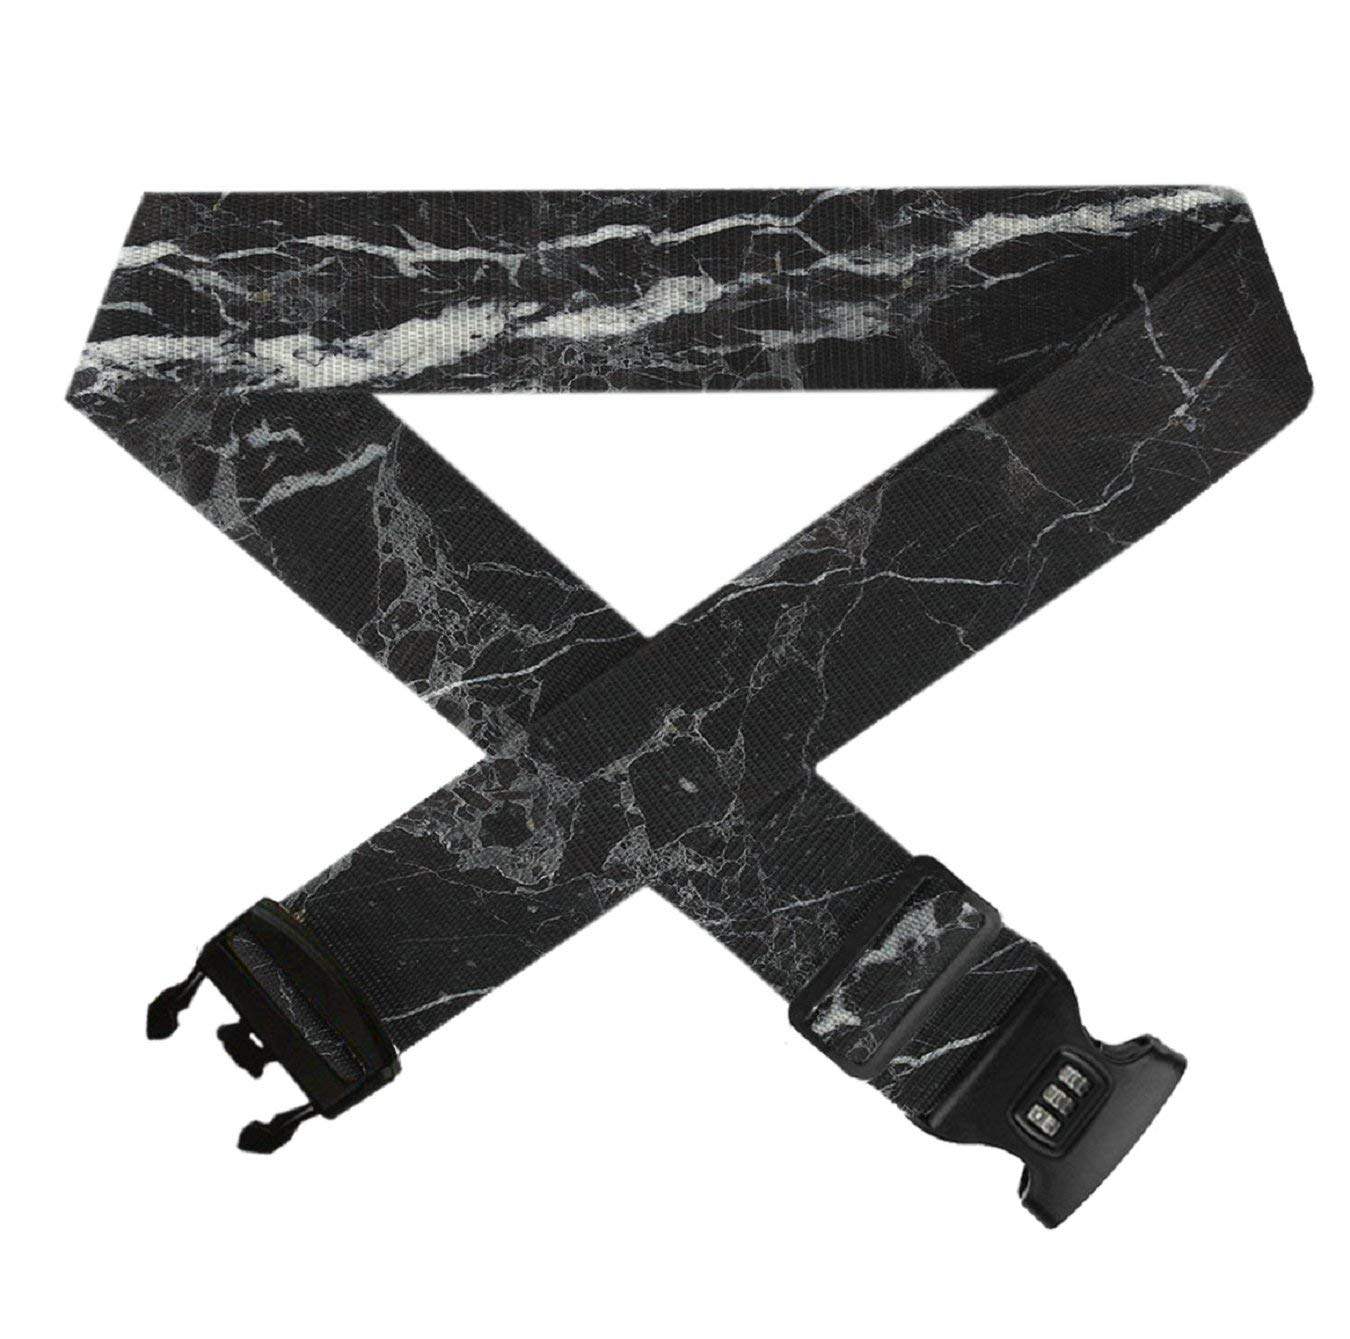 White Black Marble Texture,Heavy Duty Bag Straps 3 Dial Approved Lock for Extra Luggage//Travel//Business GLORY ART Suitcase Belt Straps 1 Pack